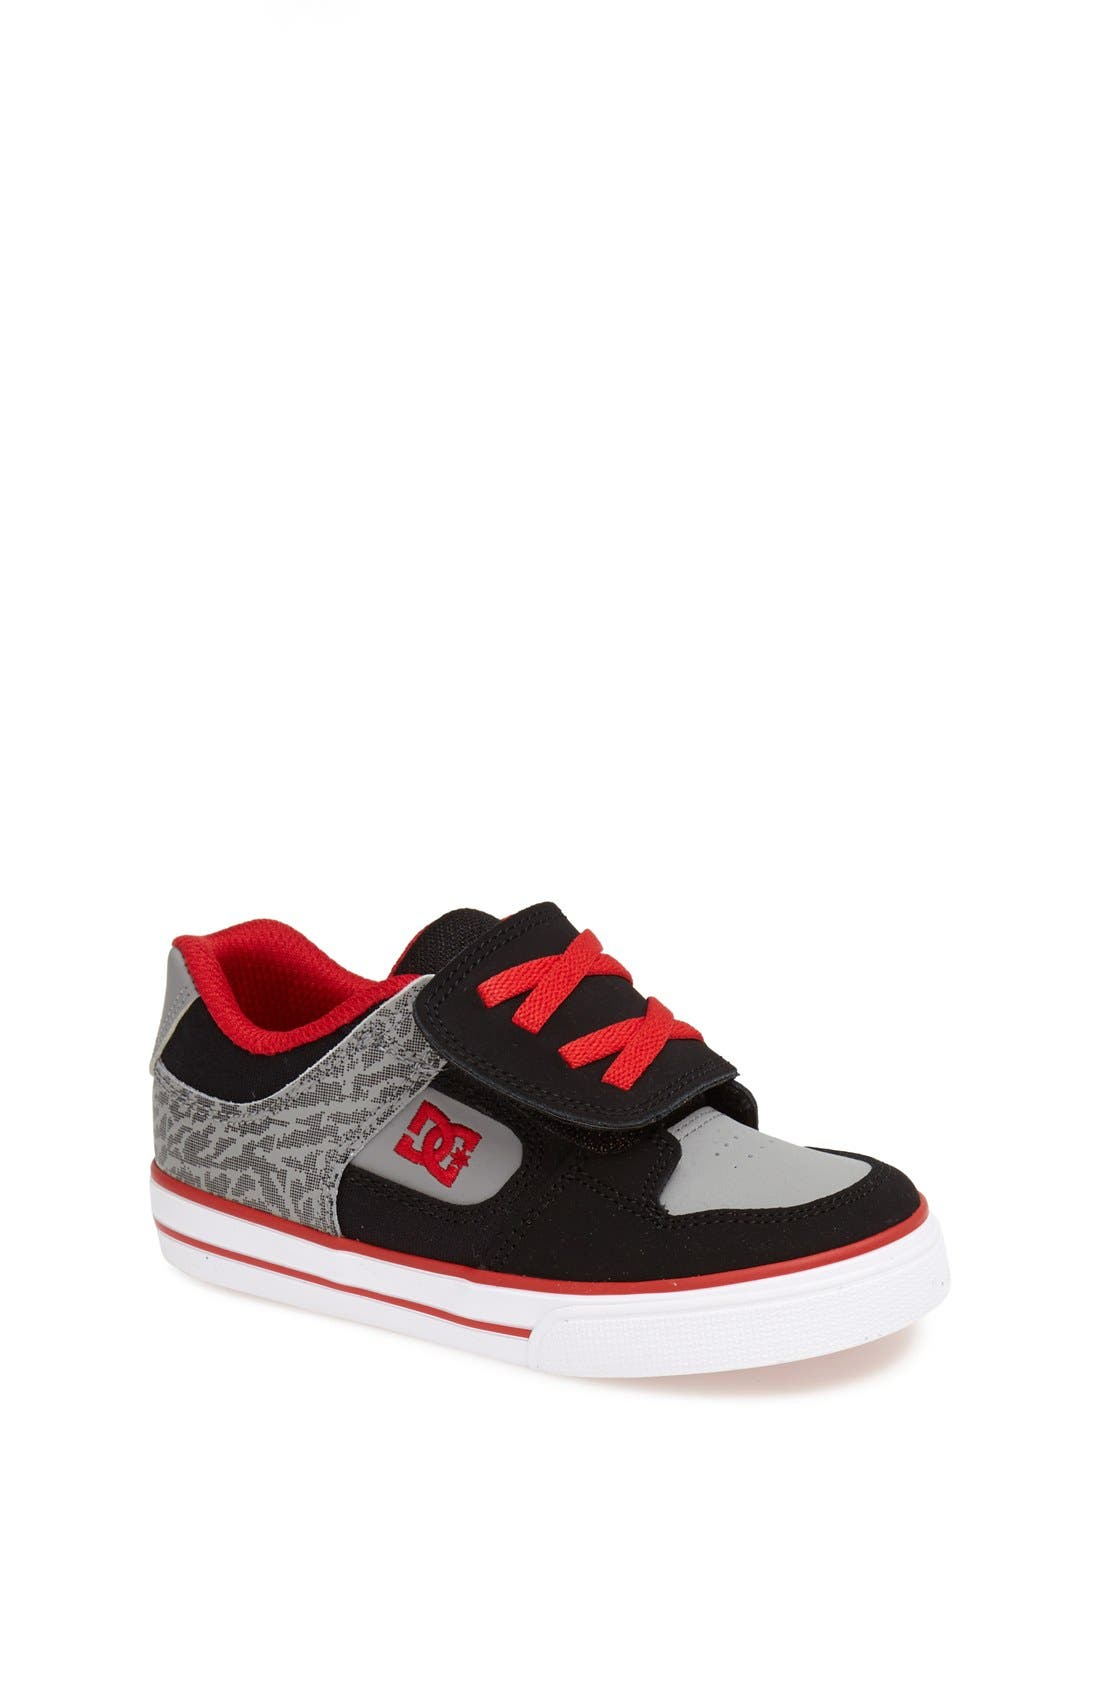 Main Image - DC SHOES PURE VELCRO SNEAKER